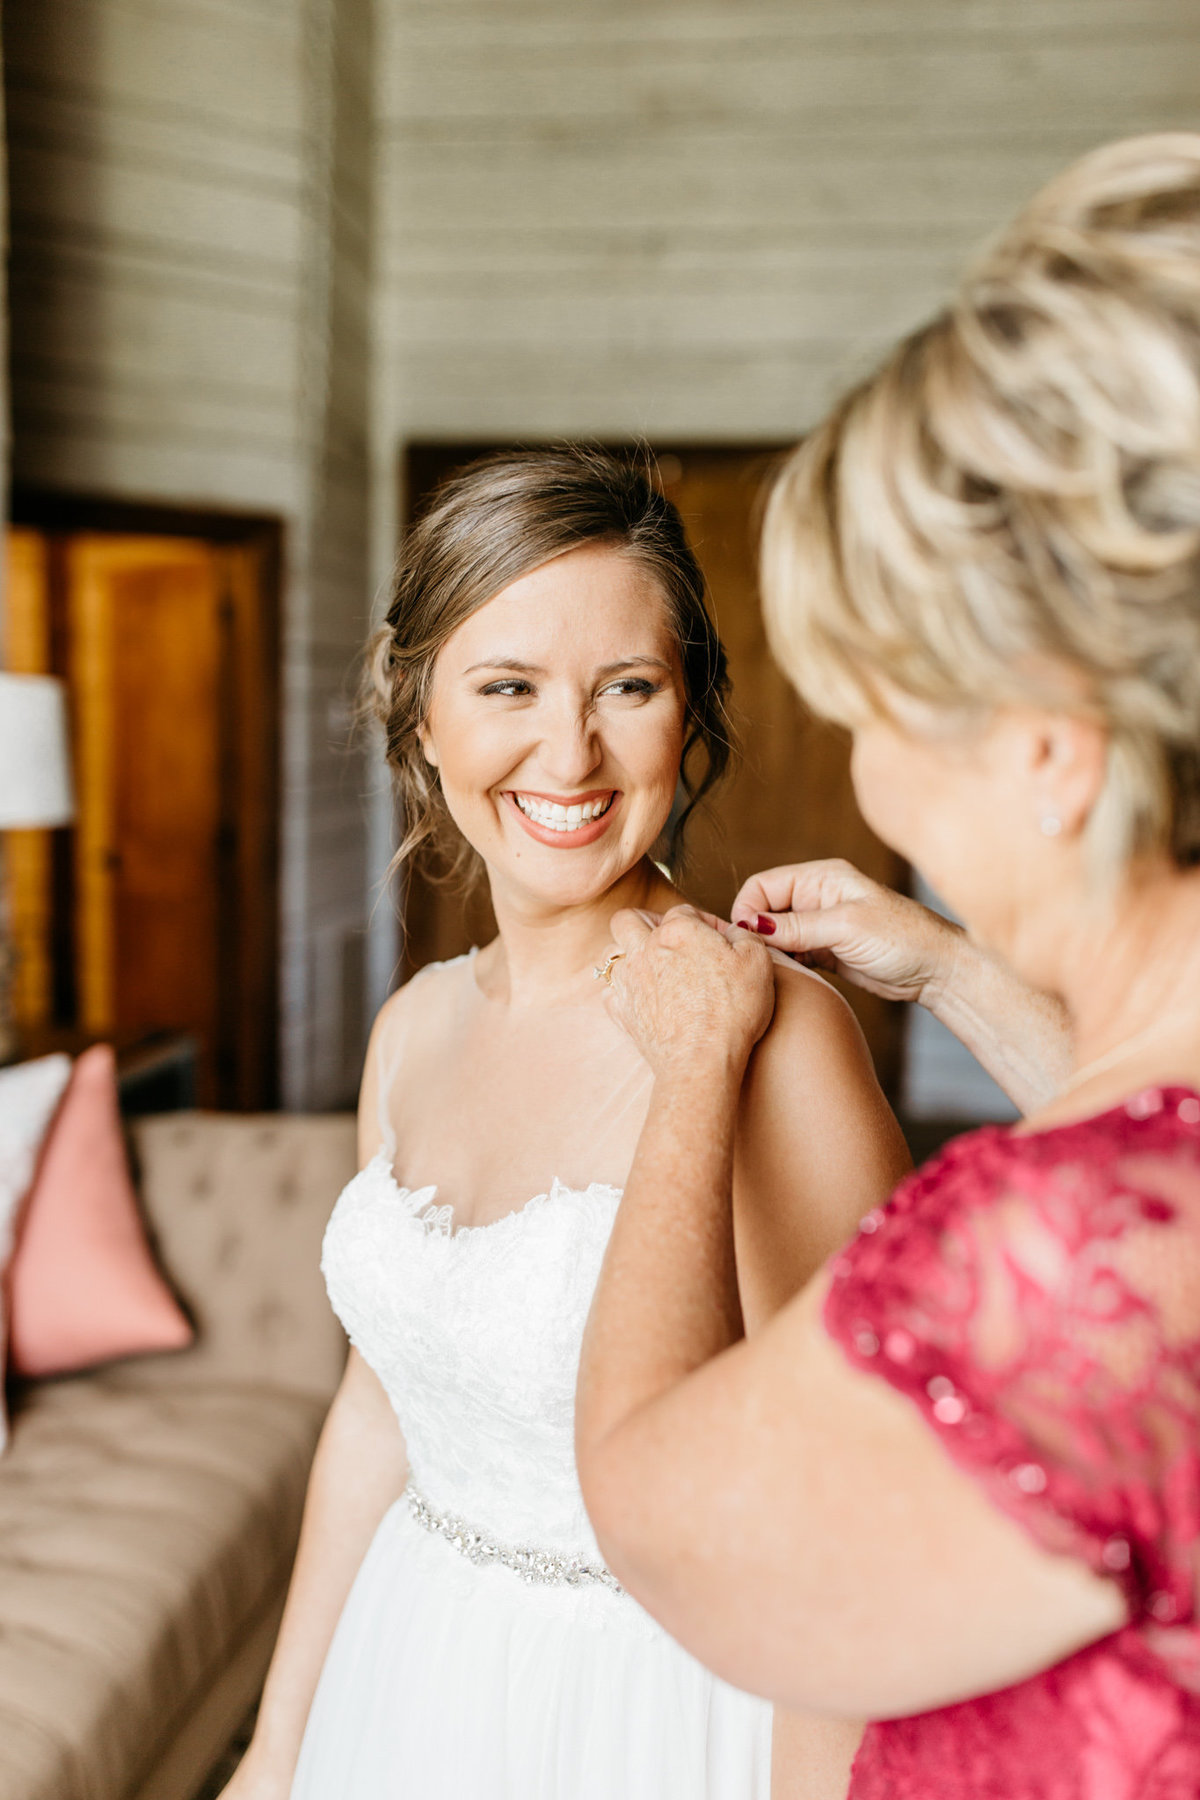 Alexa-Vossler-Photo_Dallas-Wedding-Photographer_North-Texas-Wedding-Photographer_Stephanie-Chase-Wedding-at-Morgan-Creek-Barn-Aubrey-Texas_11